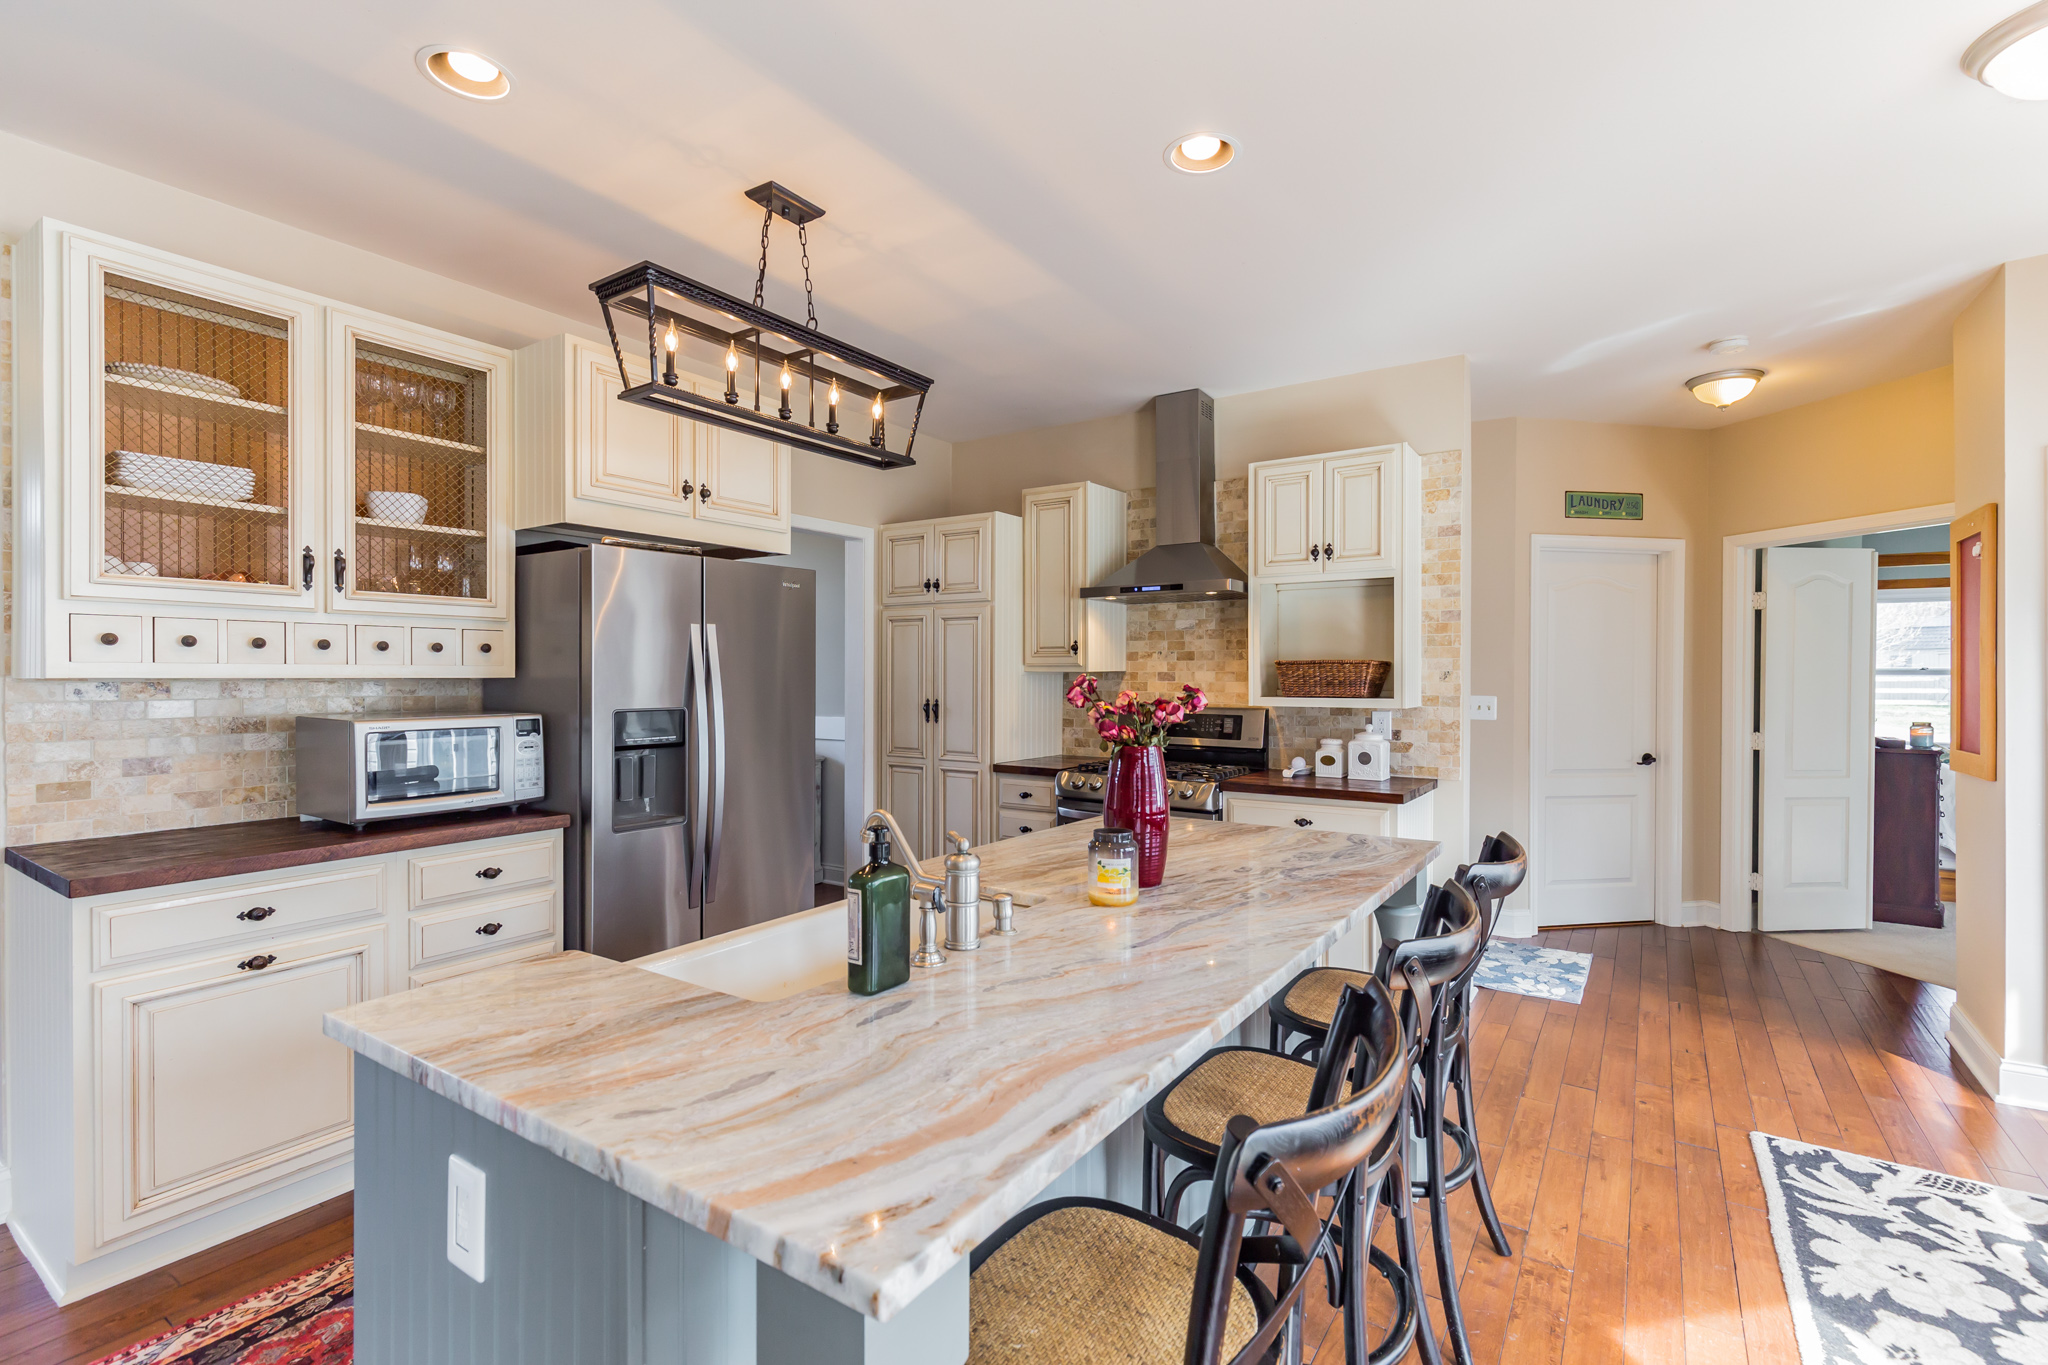 Custom Redesigned Ranch Style Home on 3.5 Acres in Prince Frederick with Pool